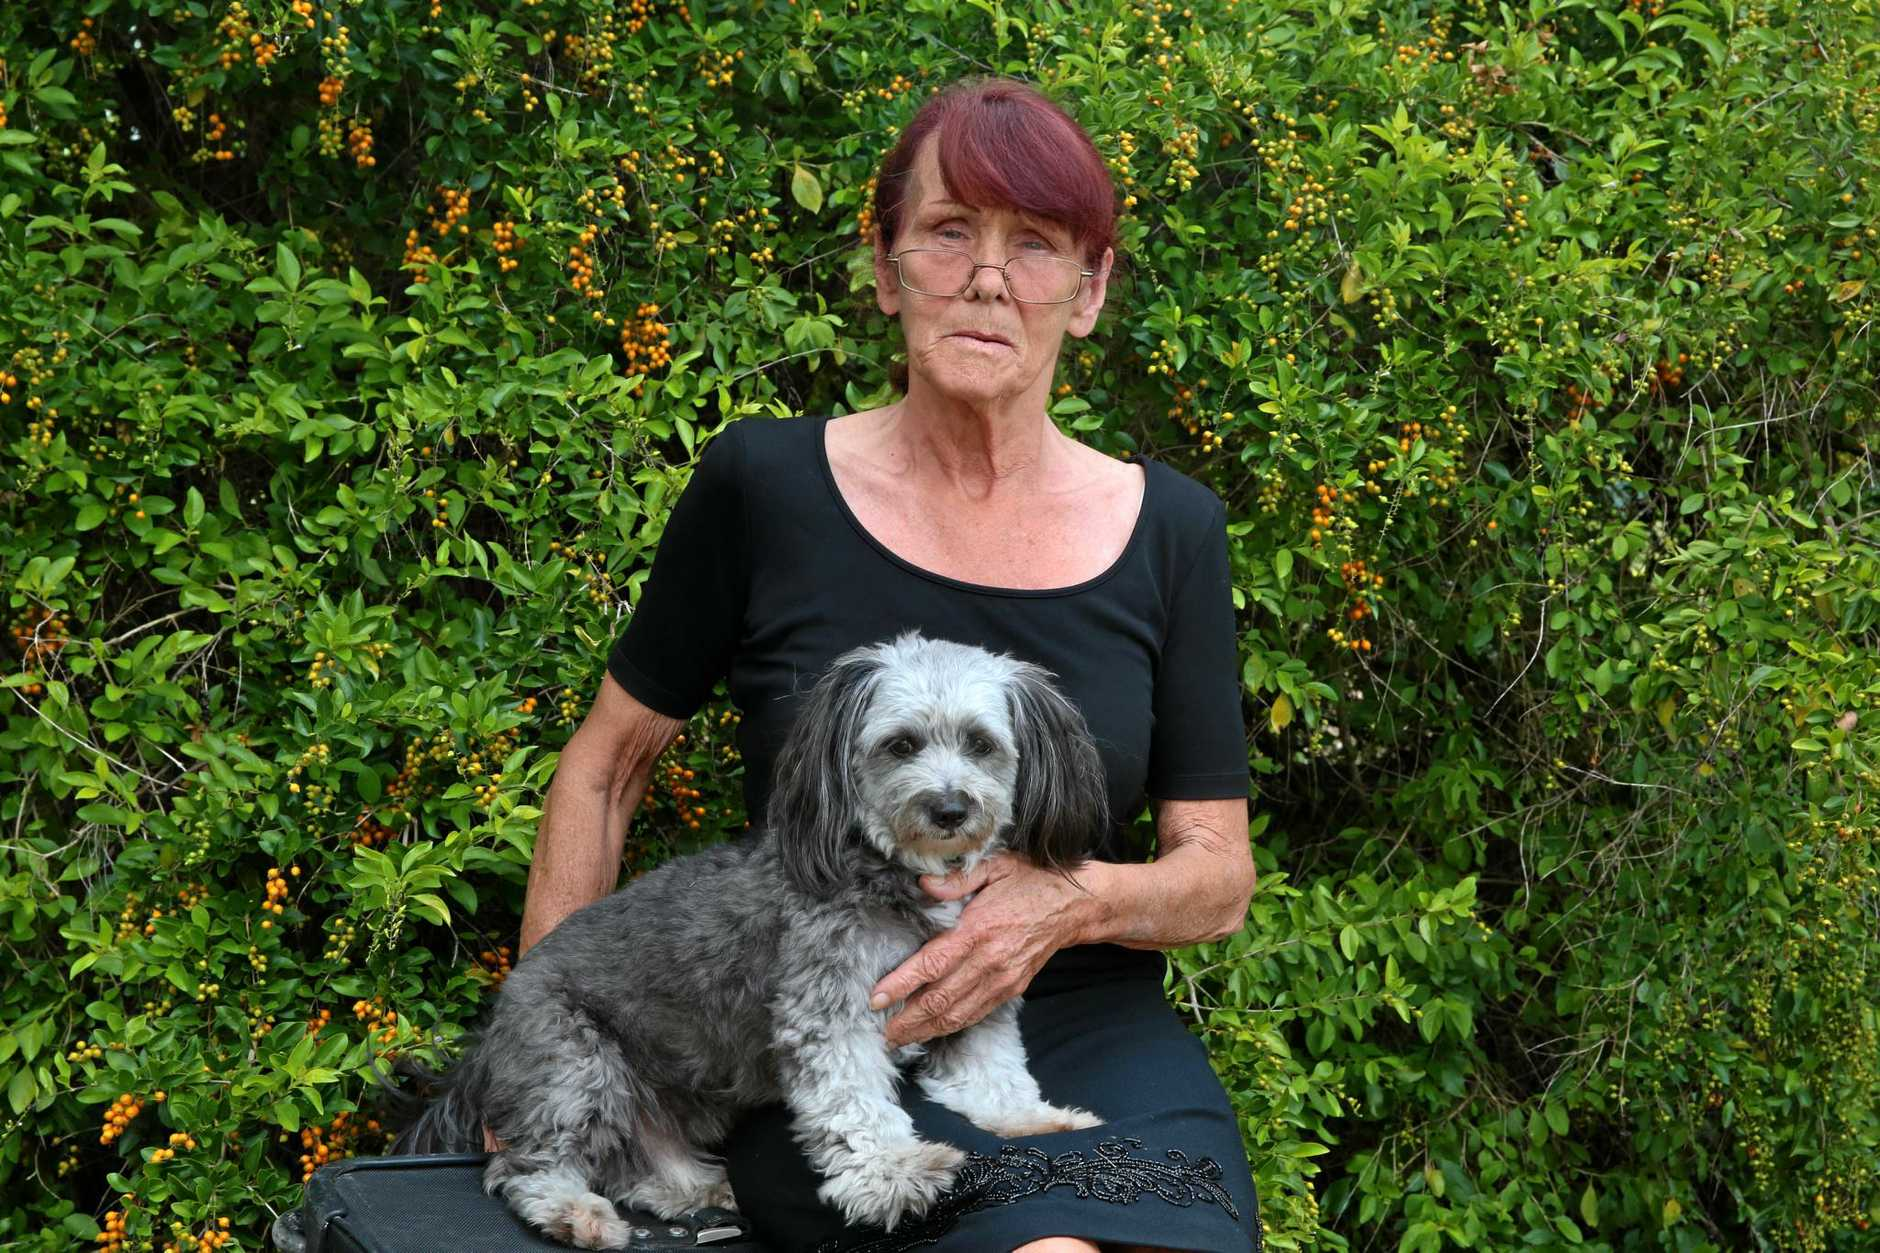 THE FACE OF HOMELESSNESS: Lynette has found herself homeless for the first time in her life. Pictured with her best friend Benji.